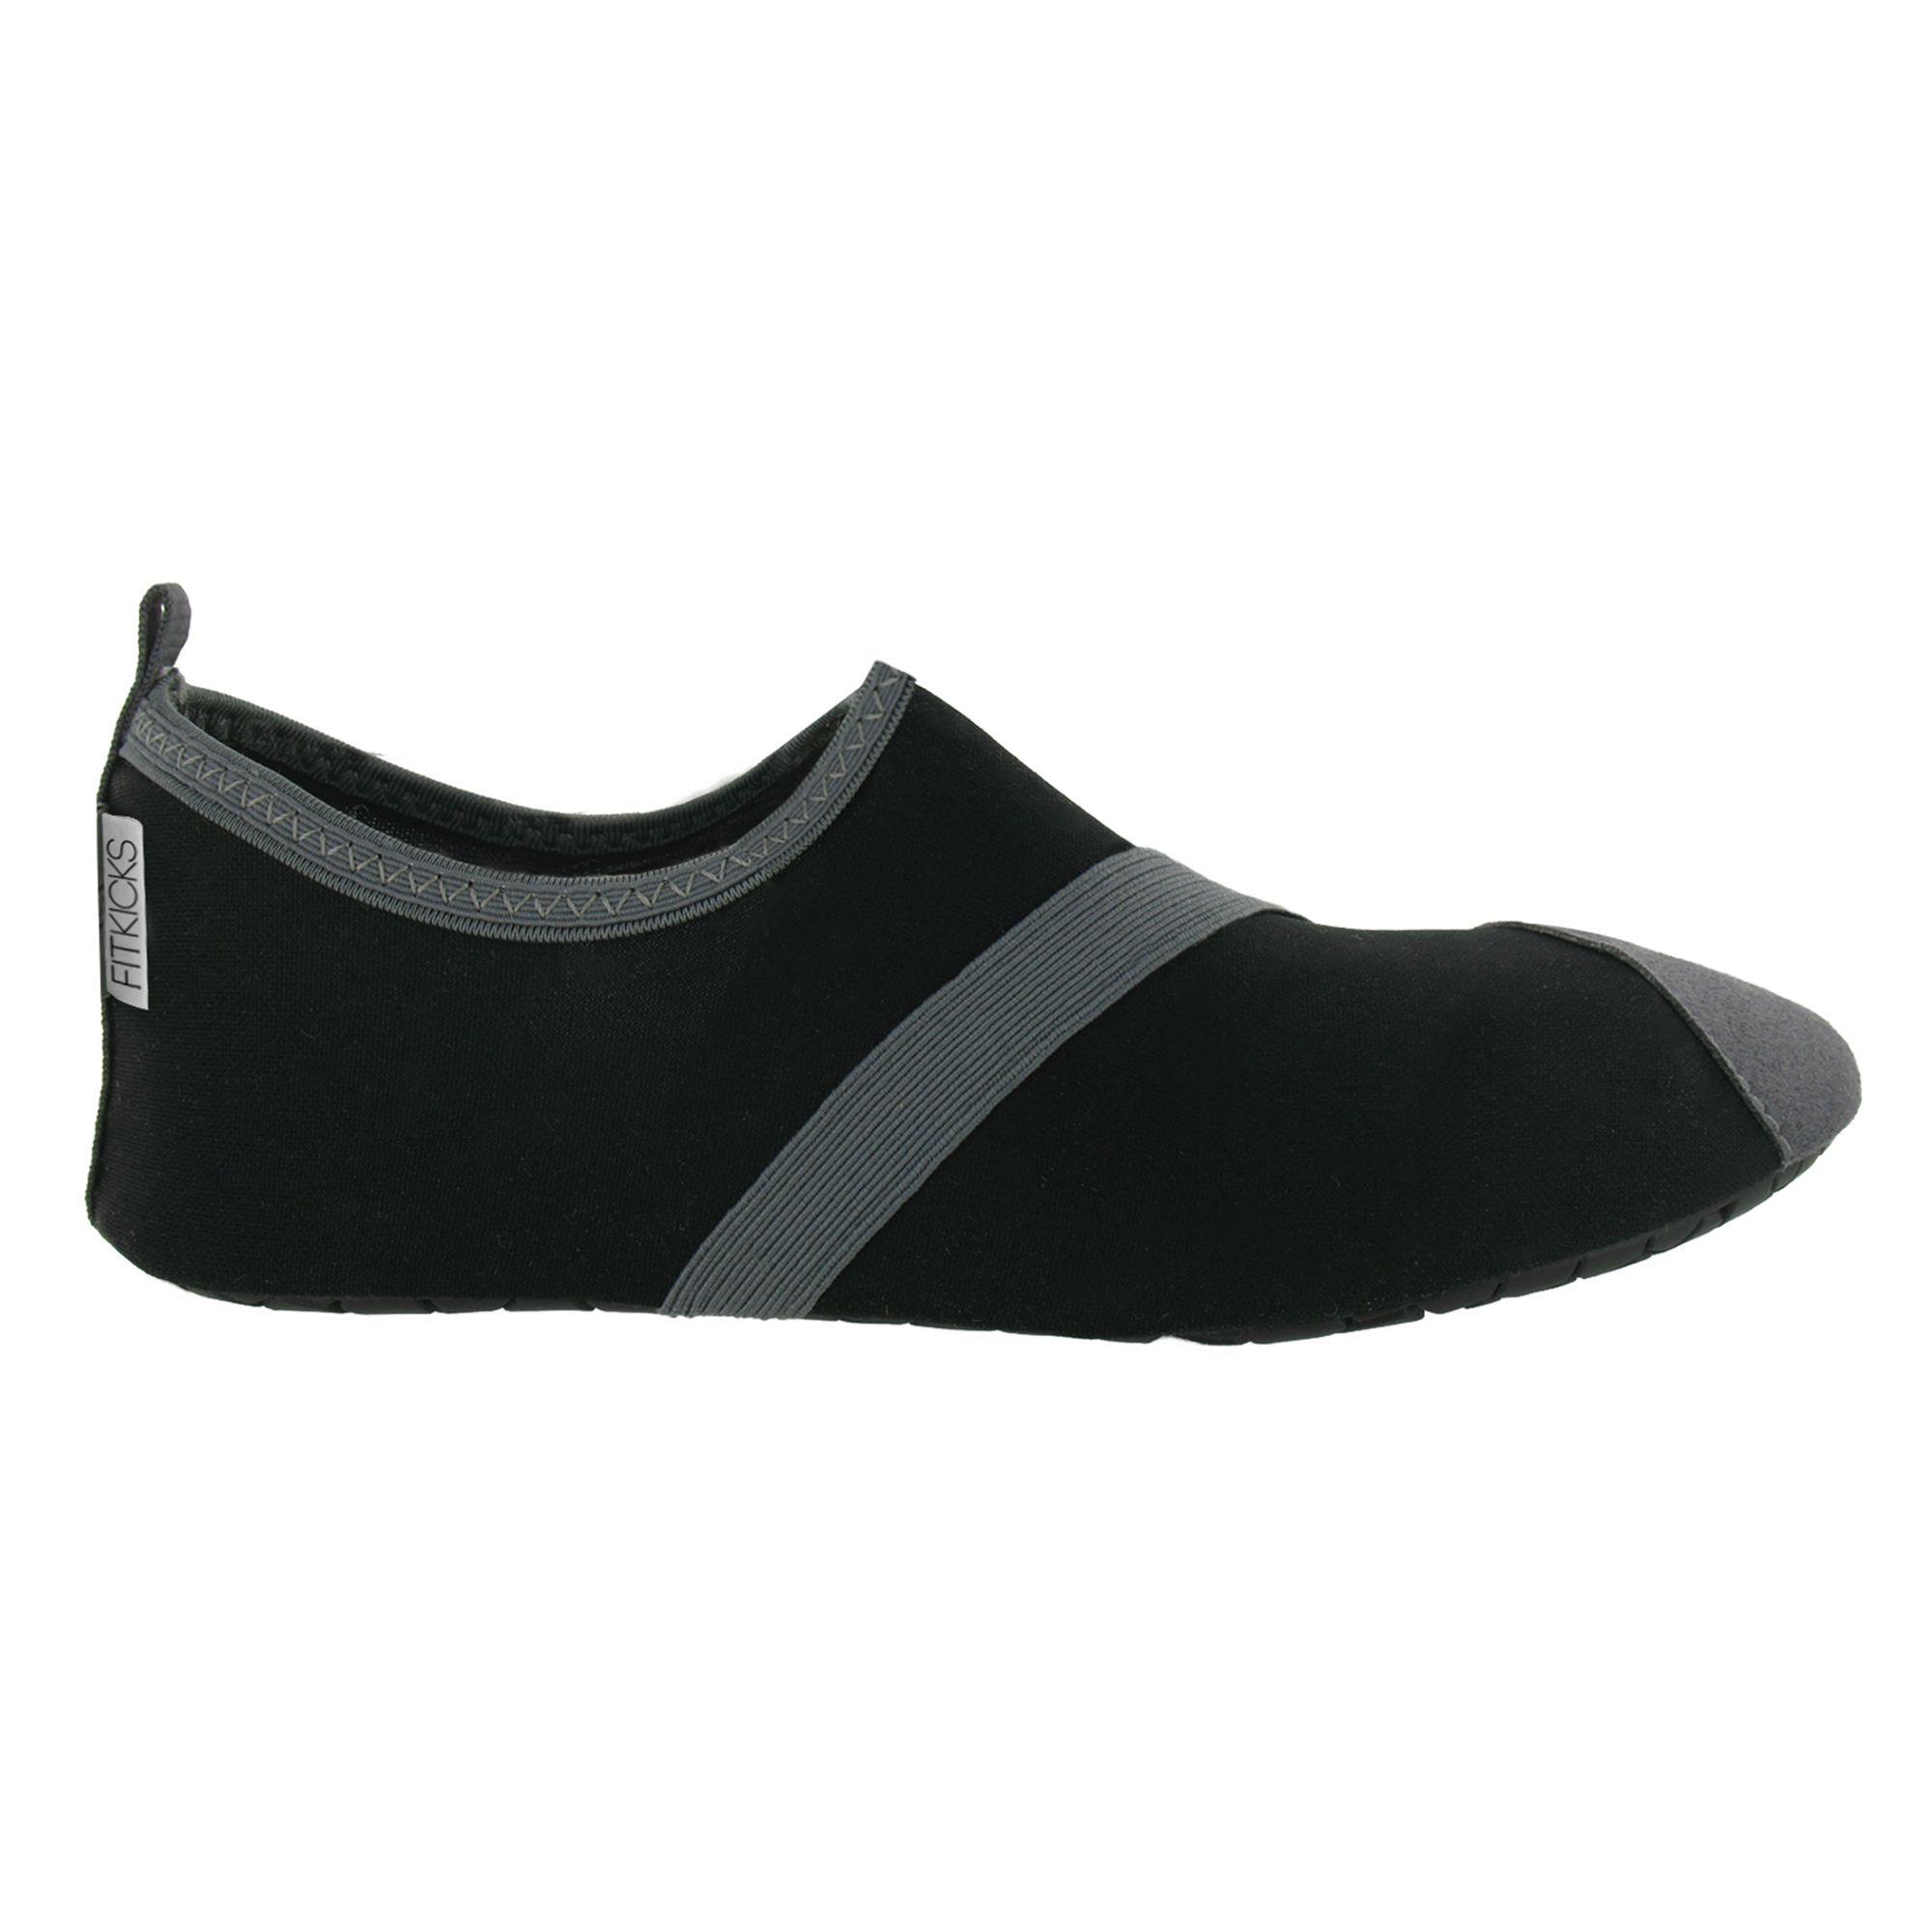 FITKICKS® Size Large Active Lifestyle Footwear in Black